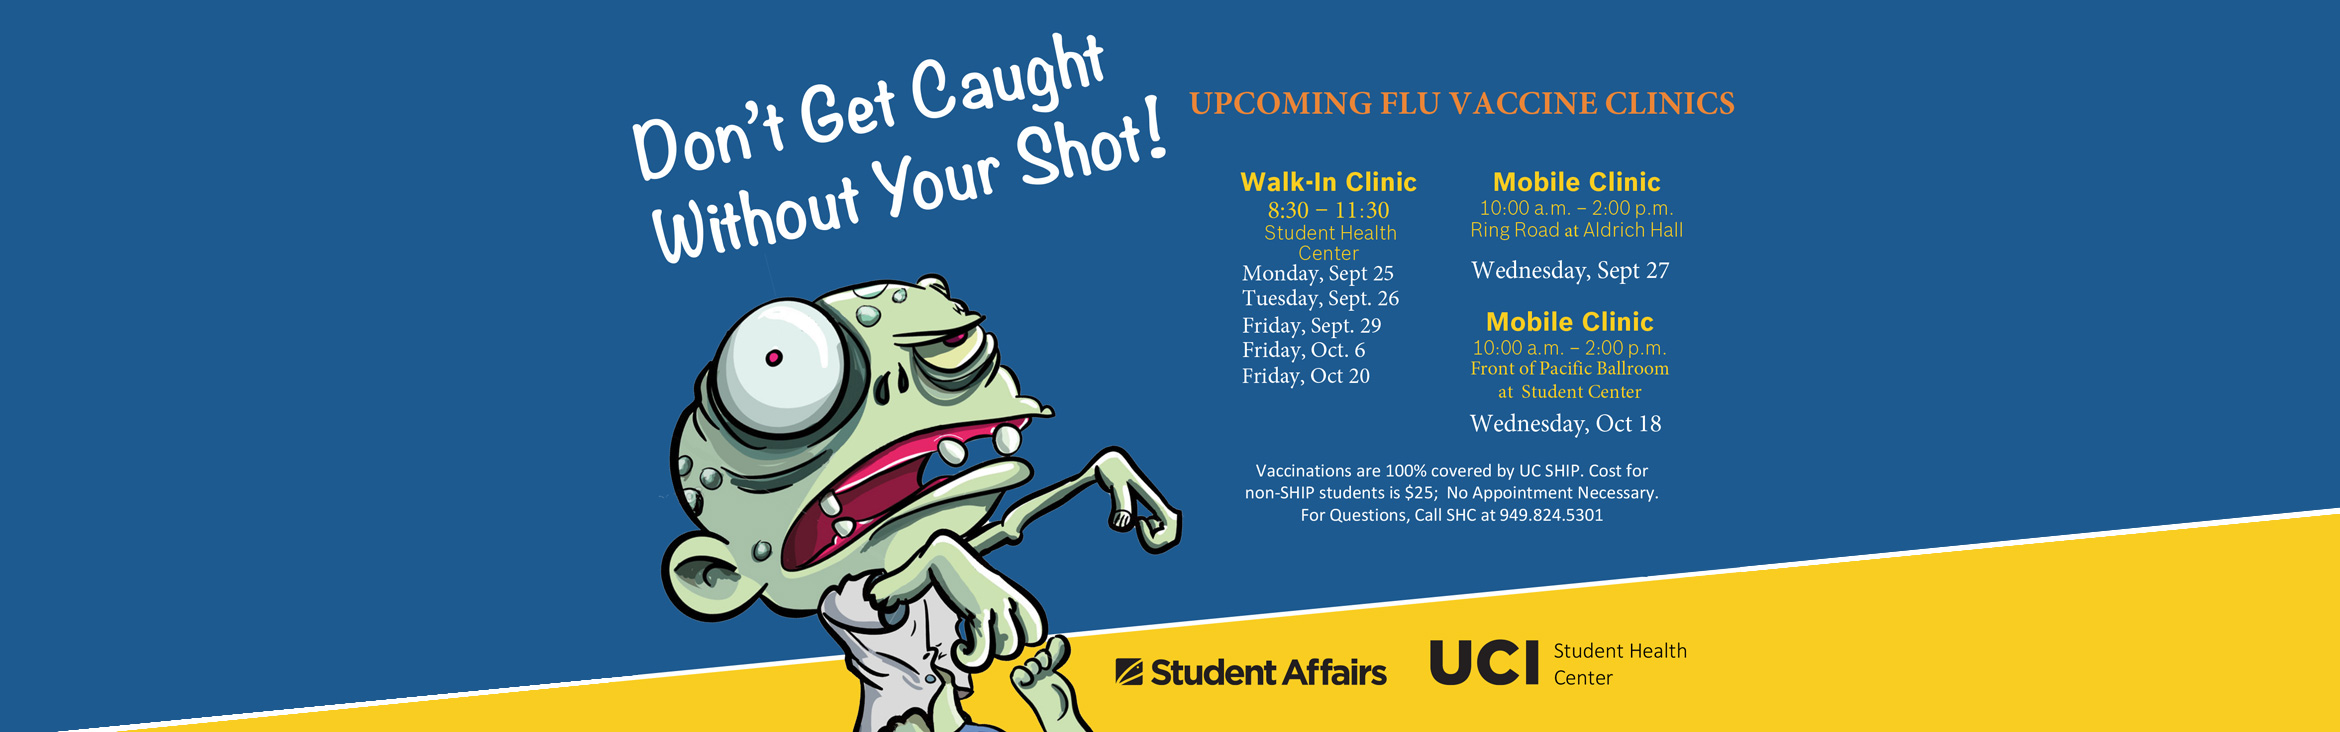 Don't get caught without your shot! Upcoming Flu Vaccine Clinics; Vaccinations are 100% covered by UC SHIP. Cost for non-SHIP students is $25; No appointment necessary. For questions, call SHC at 949.824.5301